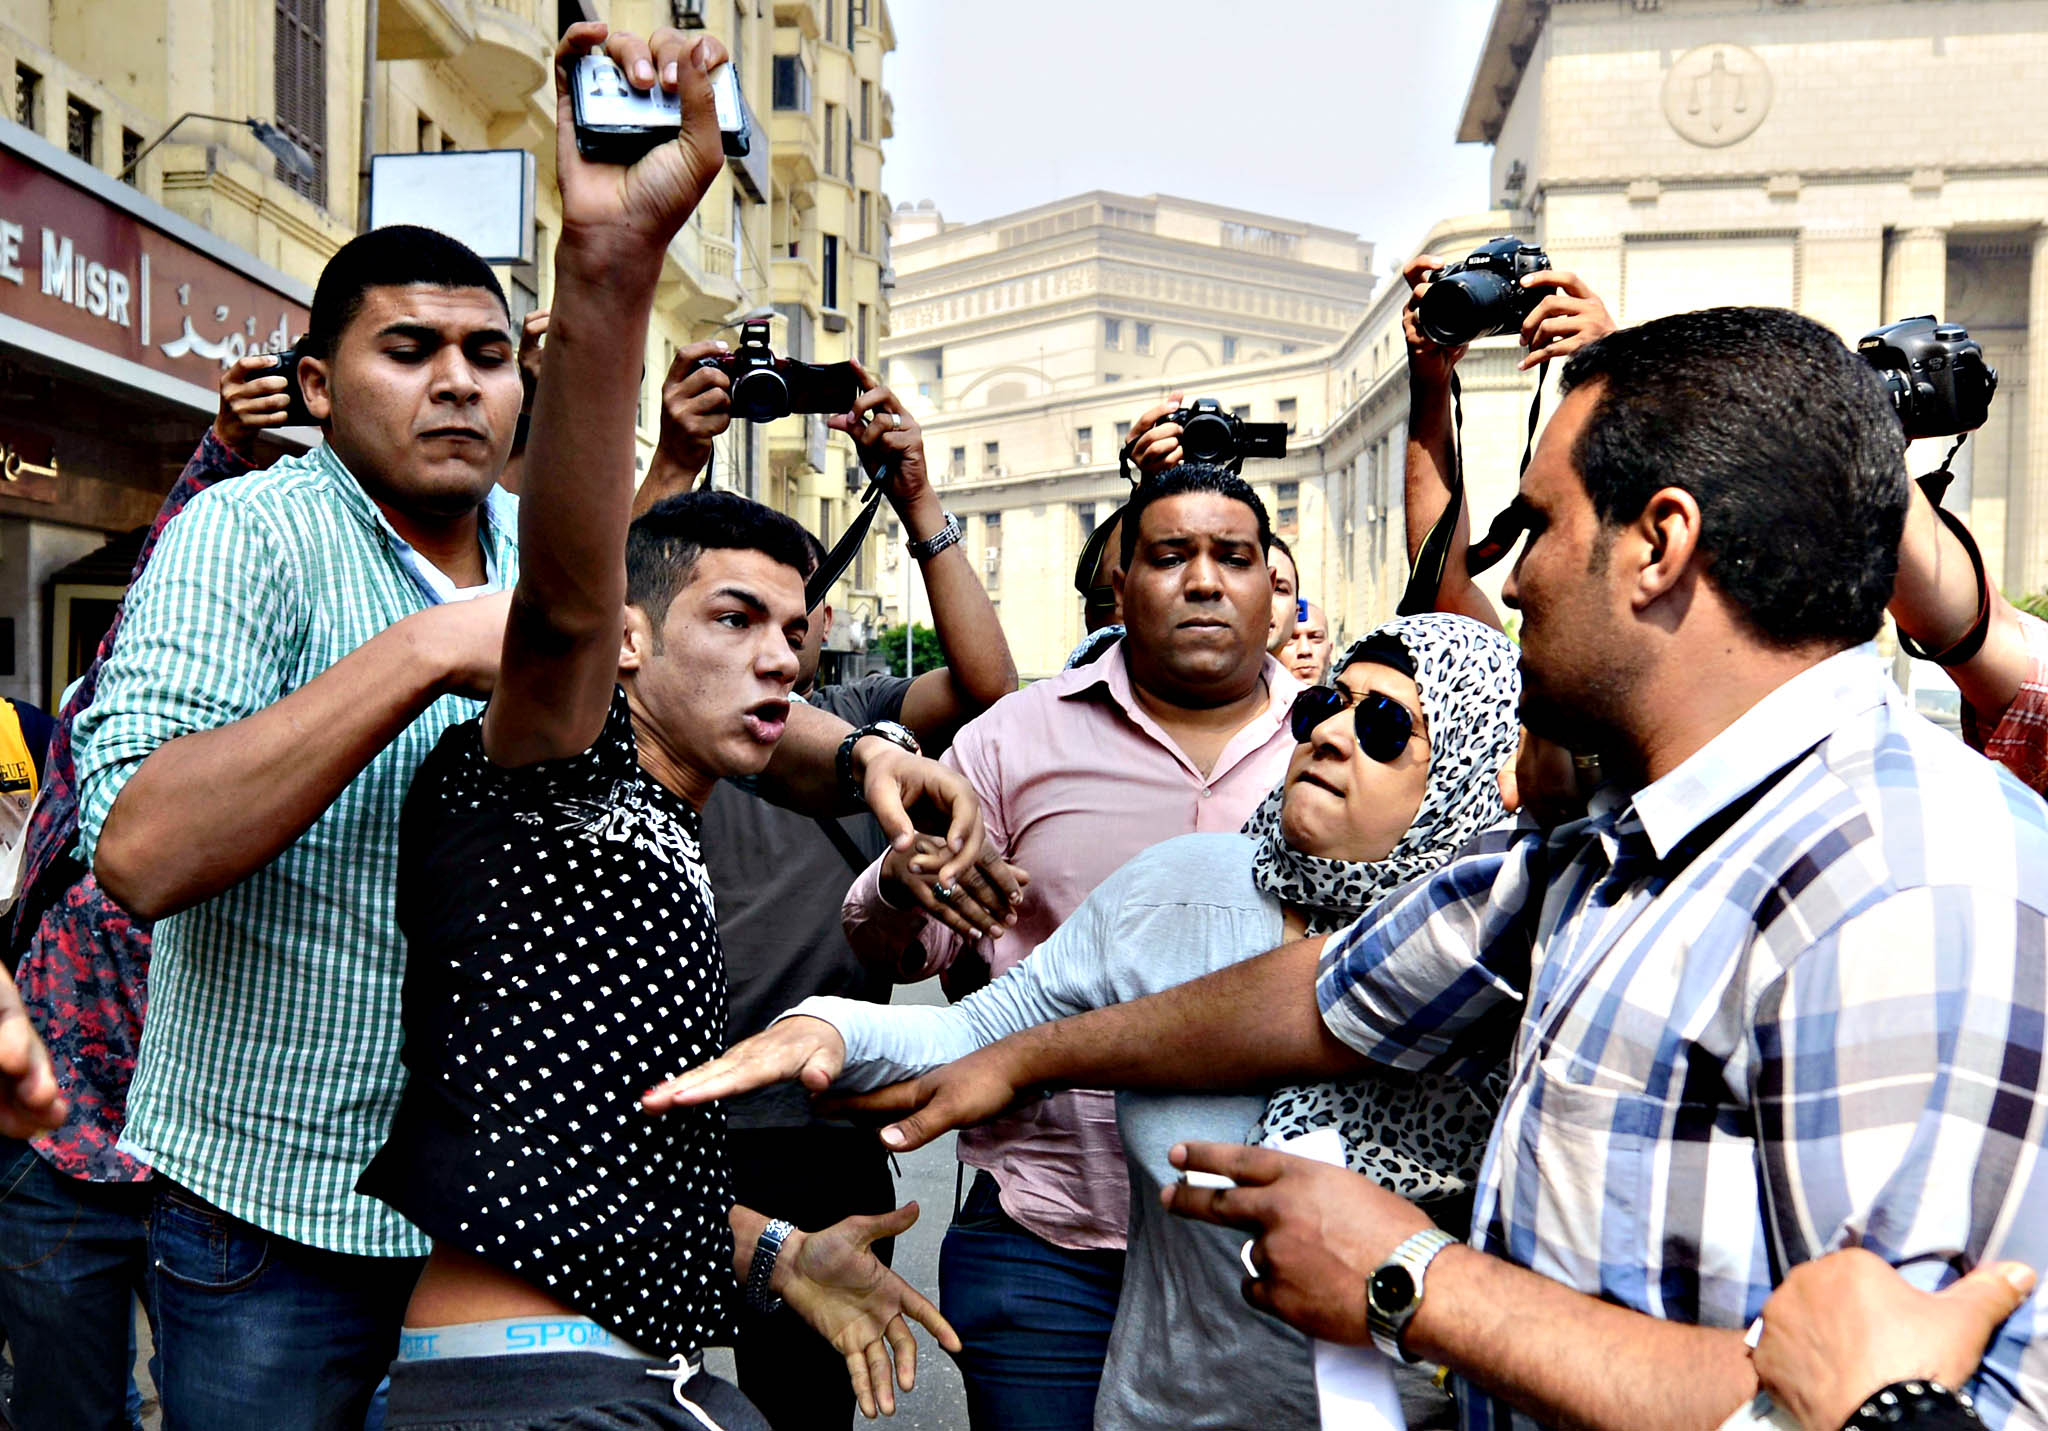 A young supporter of former Egyptian pre...A young supporter of former Egyptian president Hosni Mubarak (2nd L) is beaten up by an anti-Mubarak crowd outside the Court of Cassation in Cairo on June 4, 2015. An Egyptian appeals court will retry former president Hosni Mubarak over the deaths of hundreds of protesters during the 2011 uprising, after annulling a decision to drop murder charges against the former strongman.